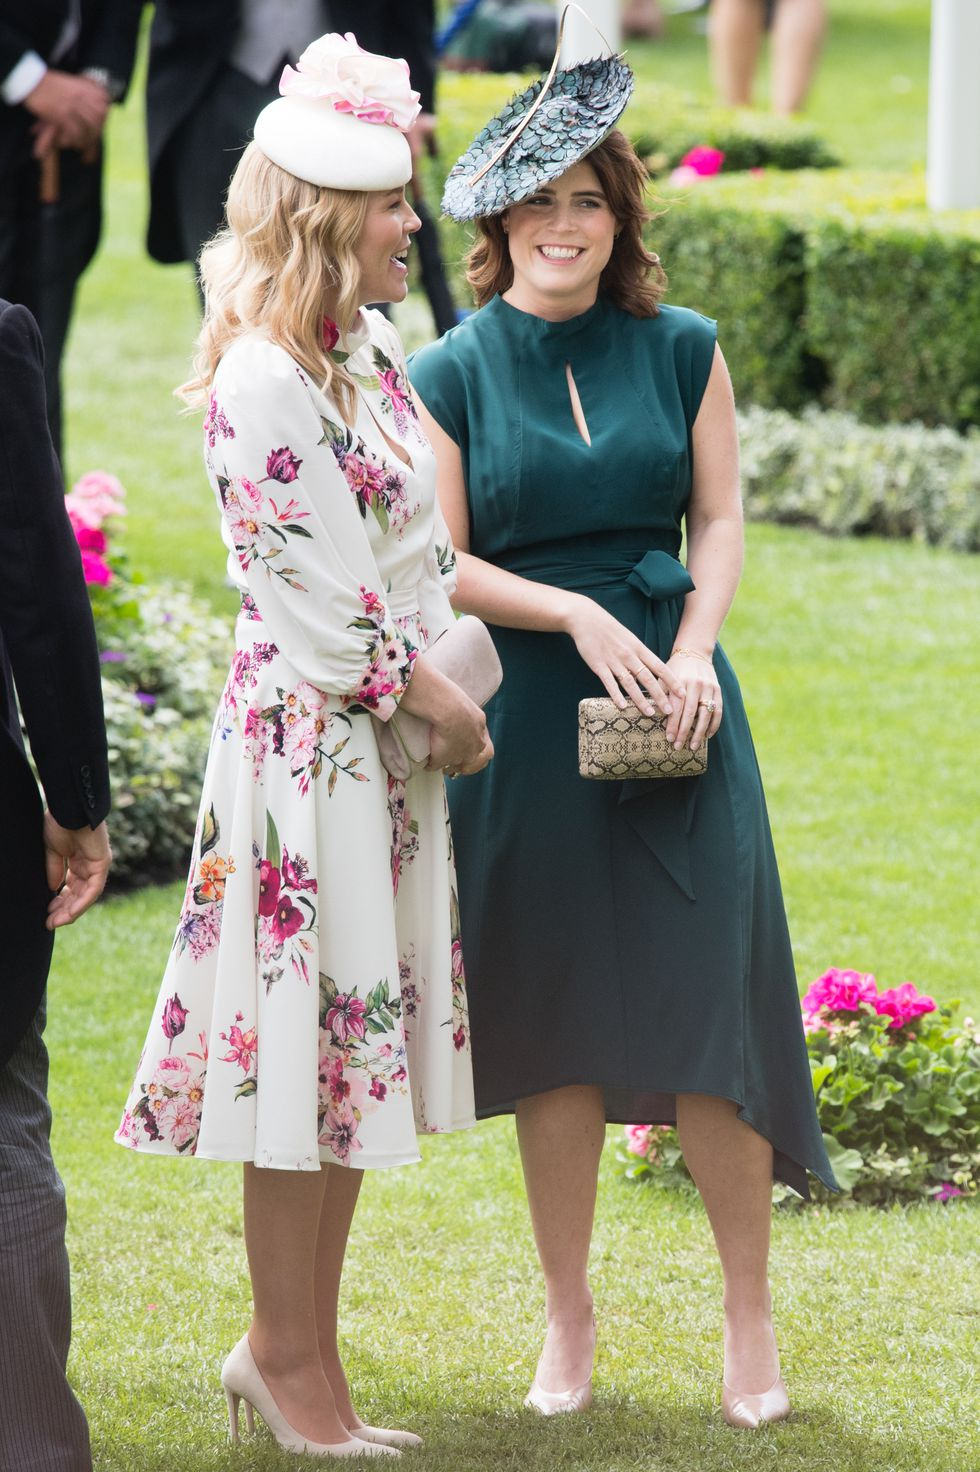 princess-eugenie-of-york-and-autumn-phillips-attends-day-news-photo-1157152187-1561044624.jpg